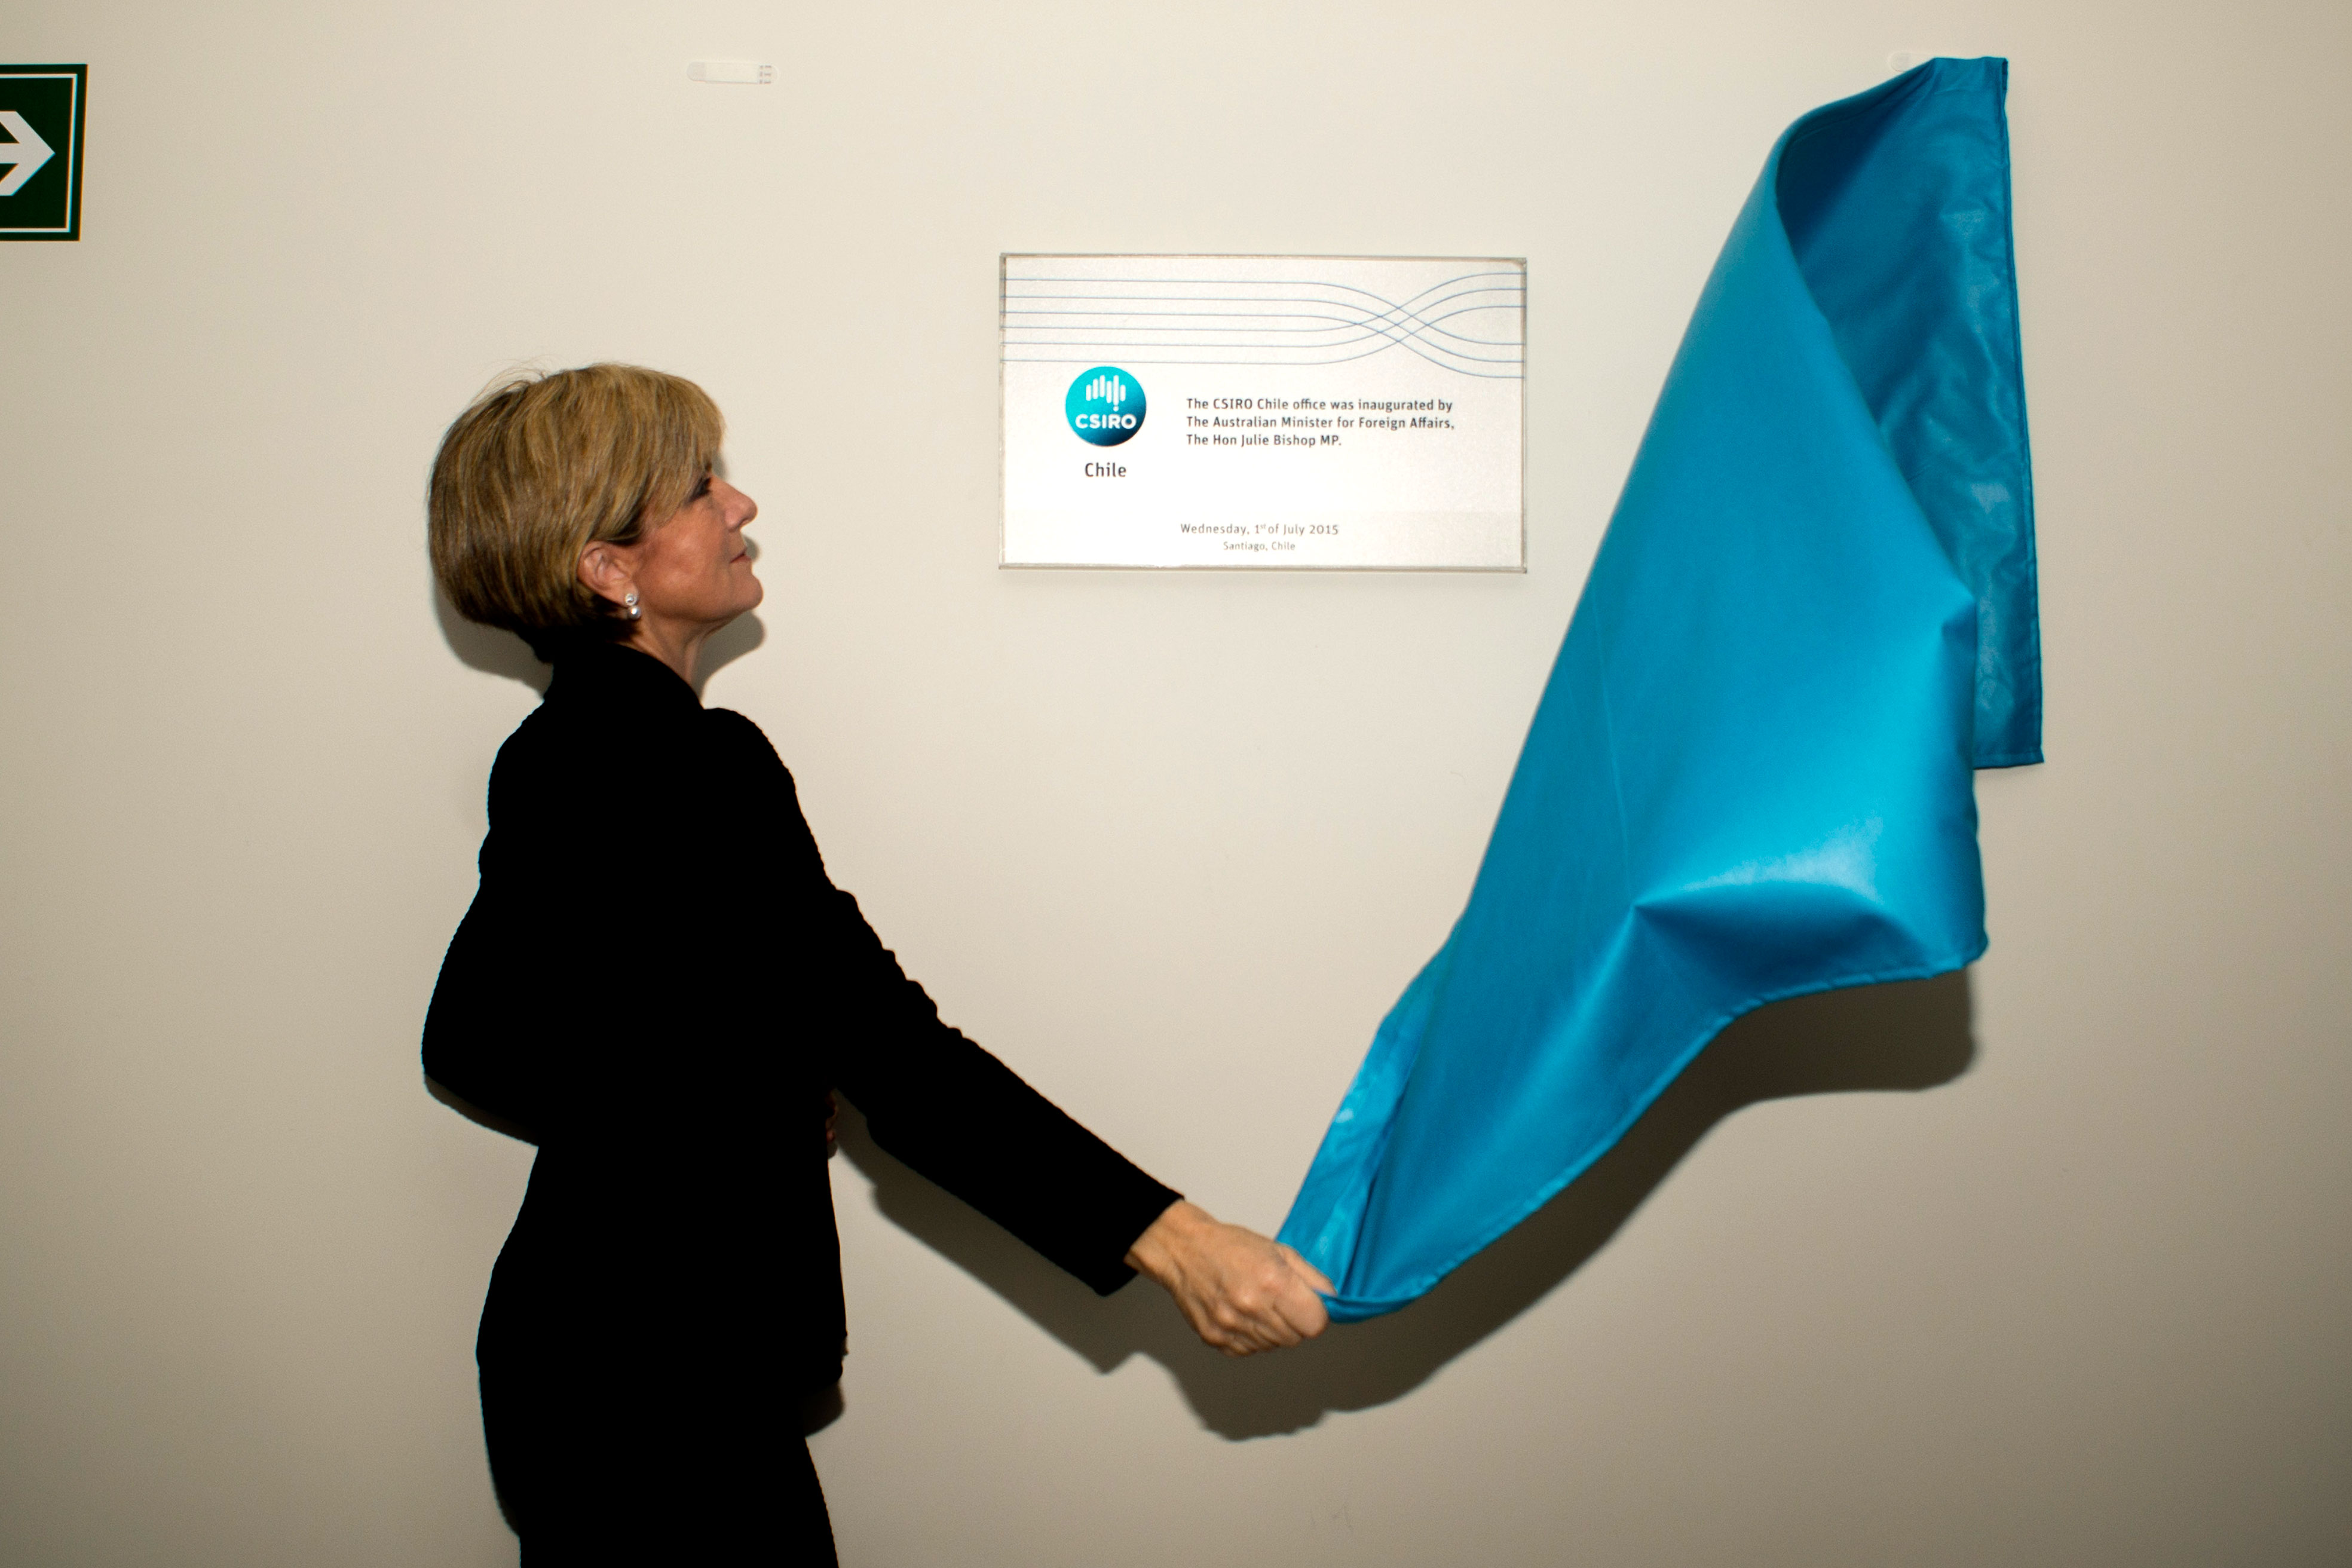 Julie Bishop MP unveiling the plaque at CSIRO Chile.